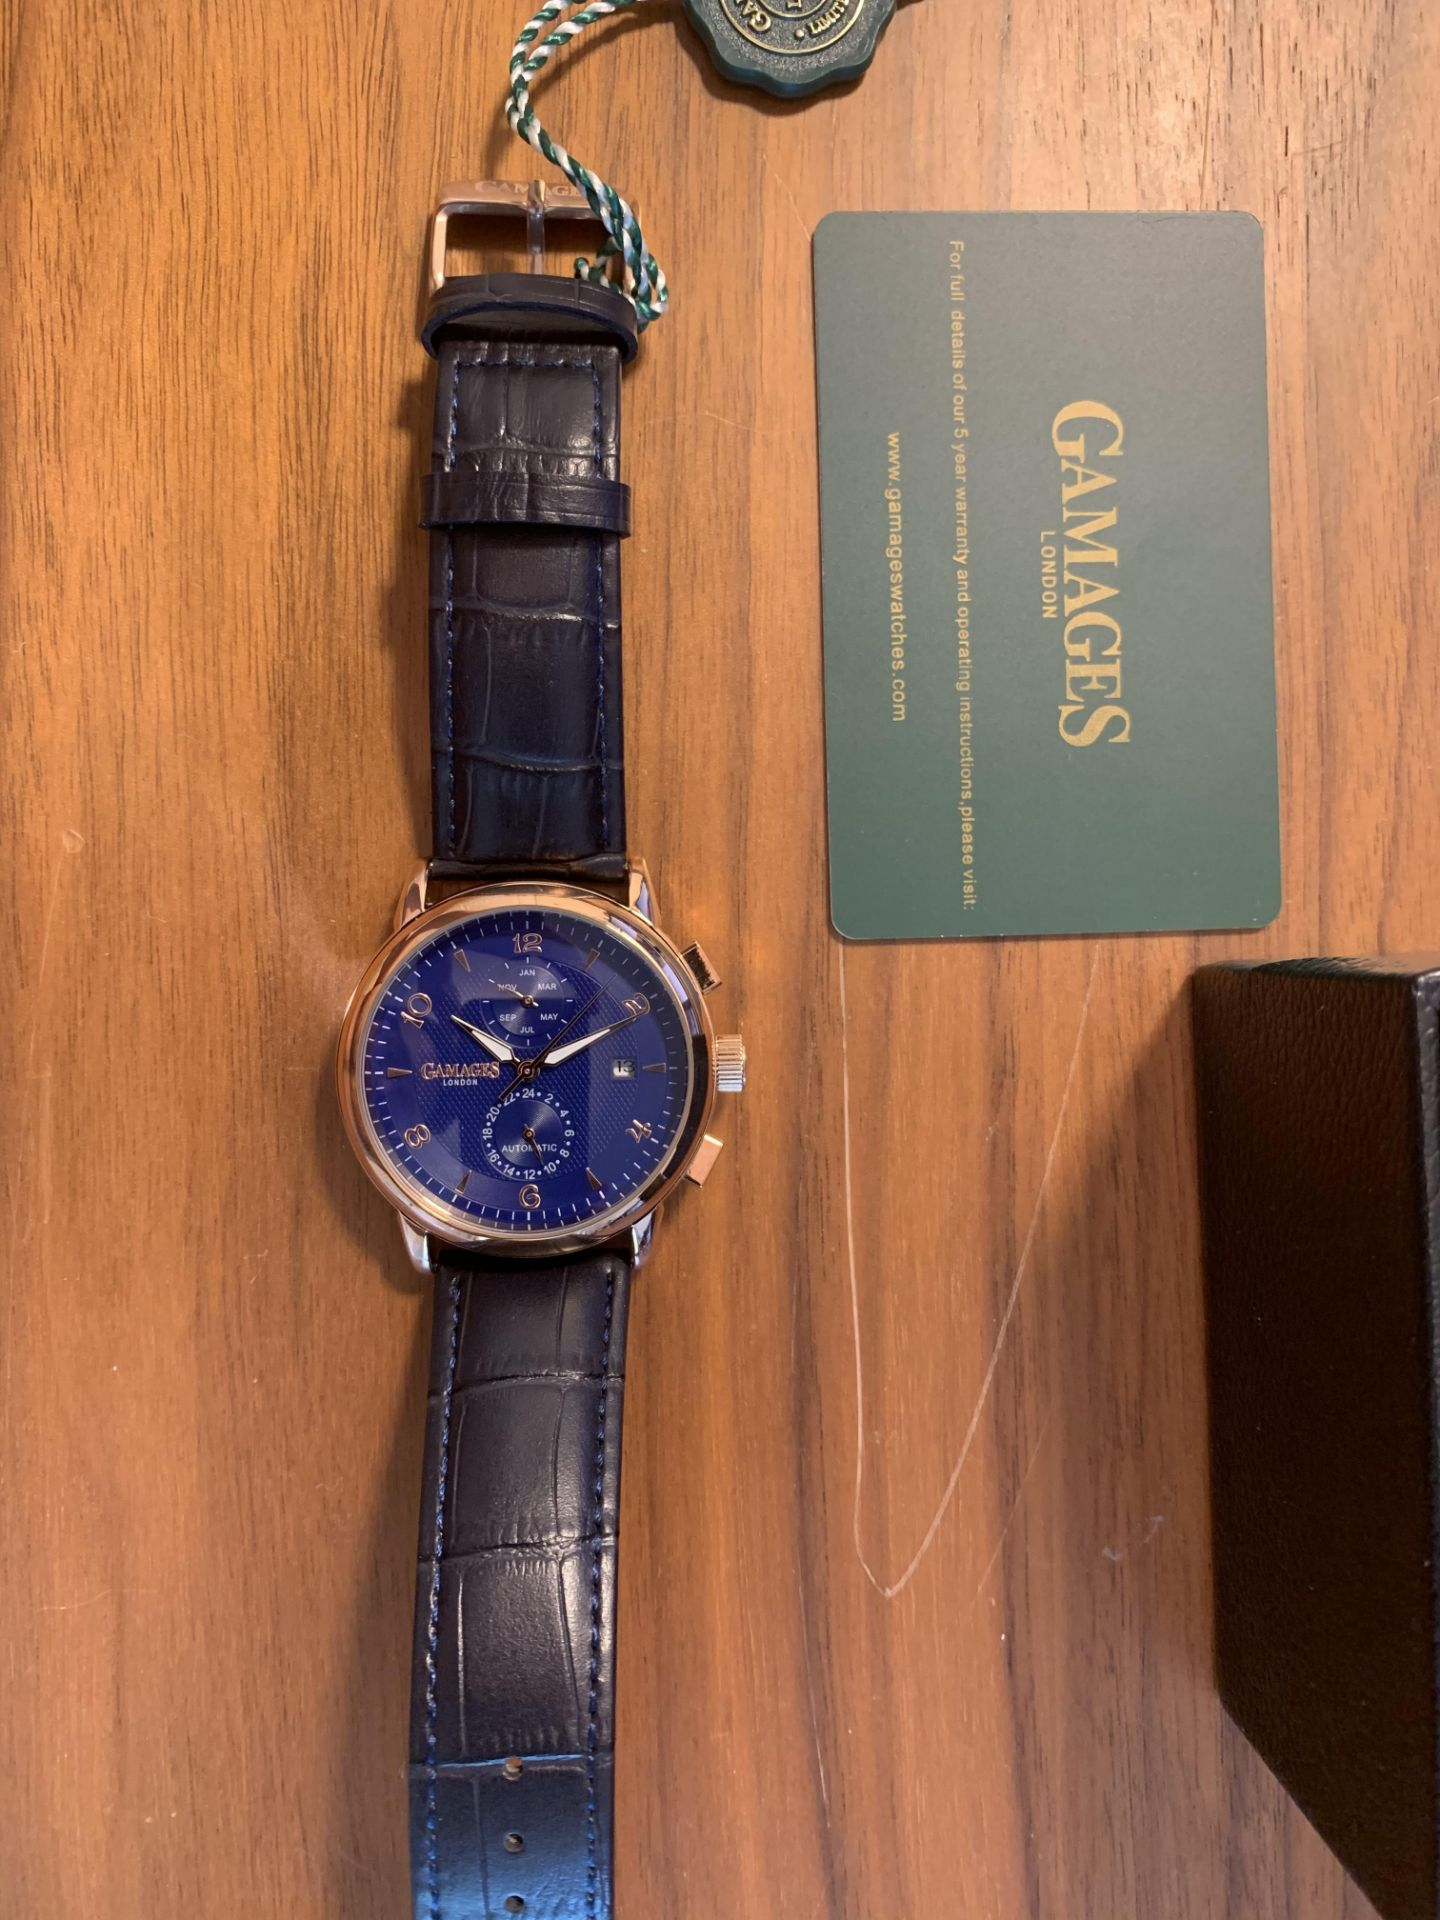 Limited Edition Hand Assembled Gamages Mystique Blue – 5 Year Warranty & Free Delivery - Image 4 of 5